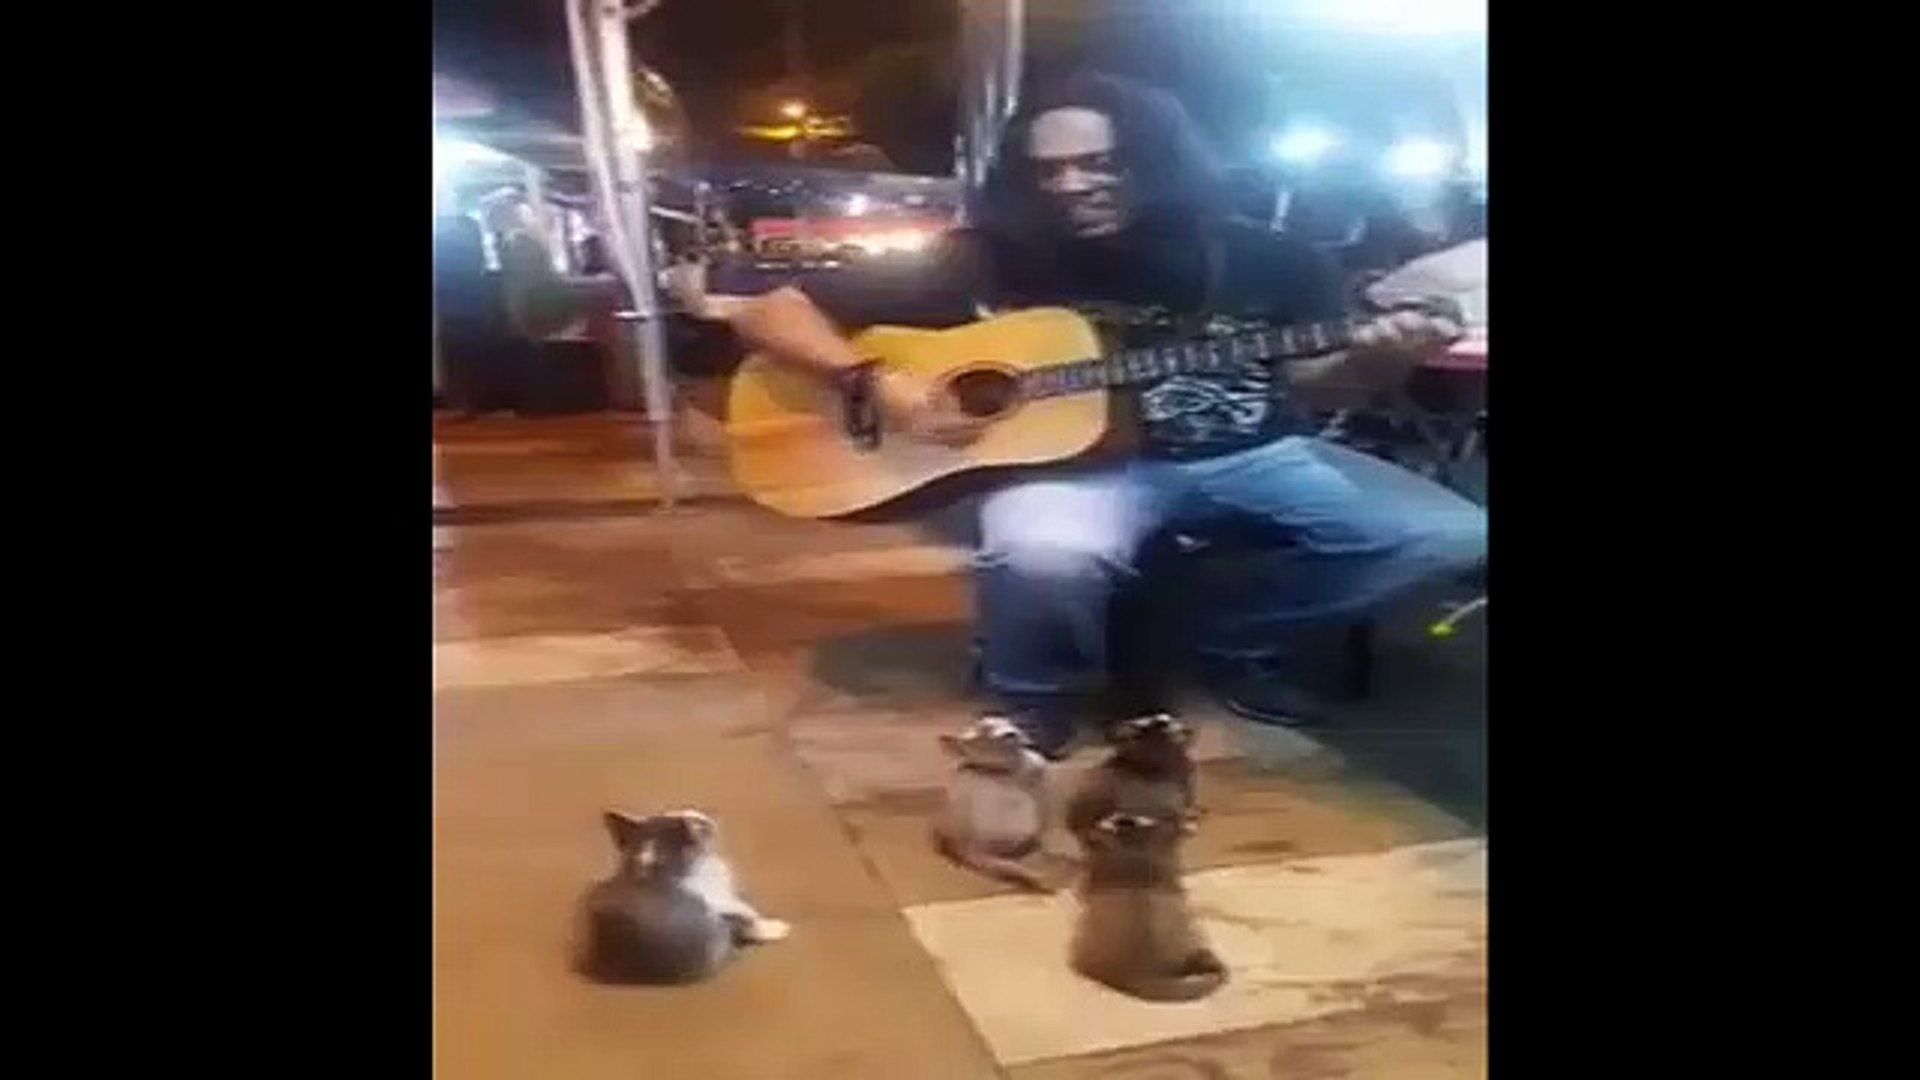 Cute Audience Cats Watching and Enjoying Street Musician Performance